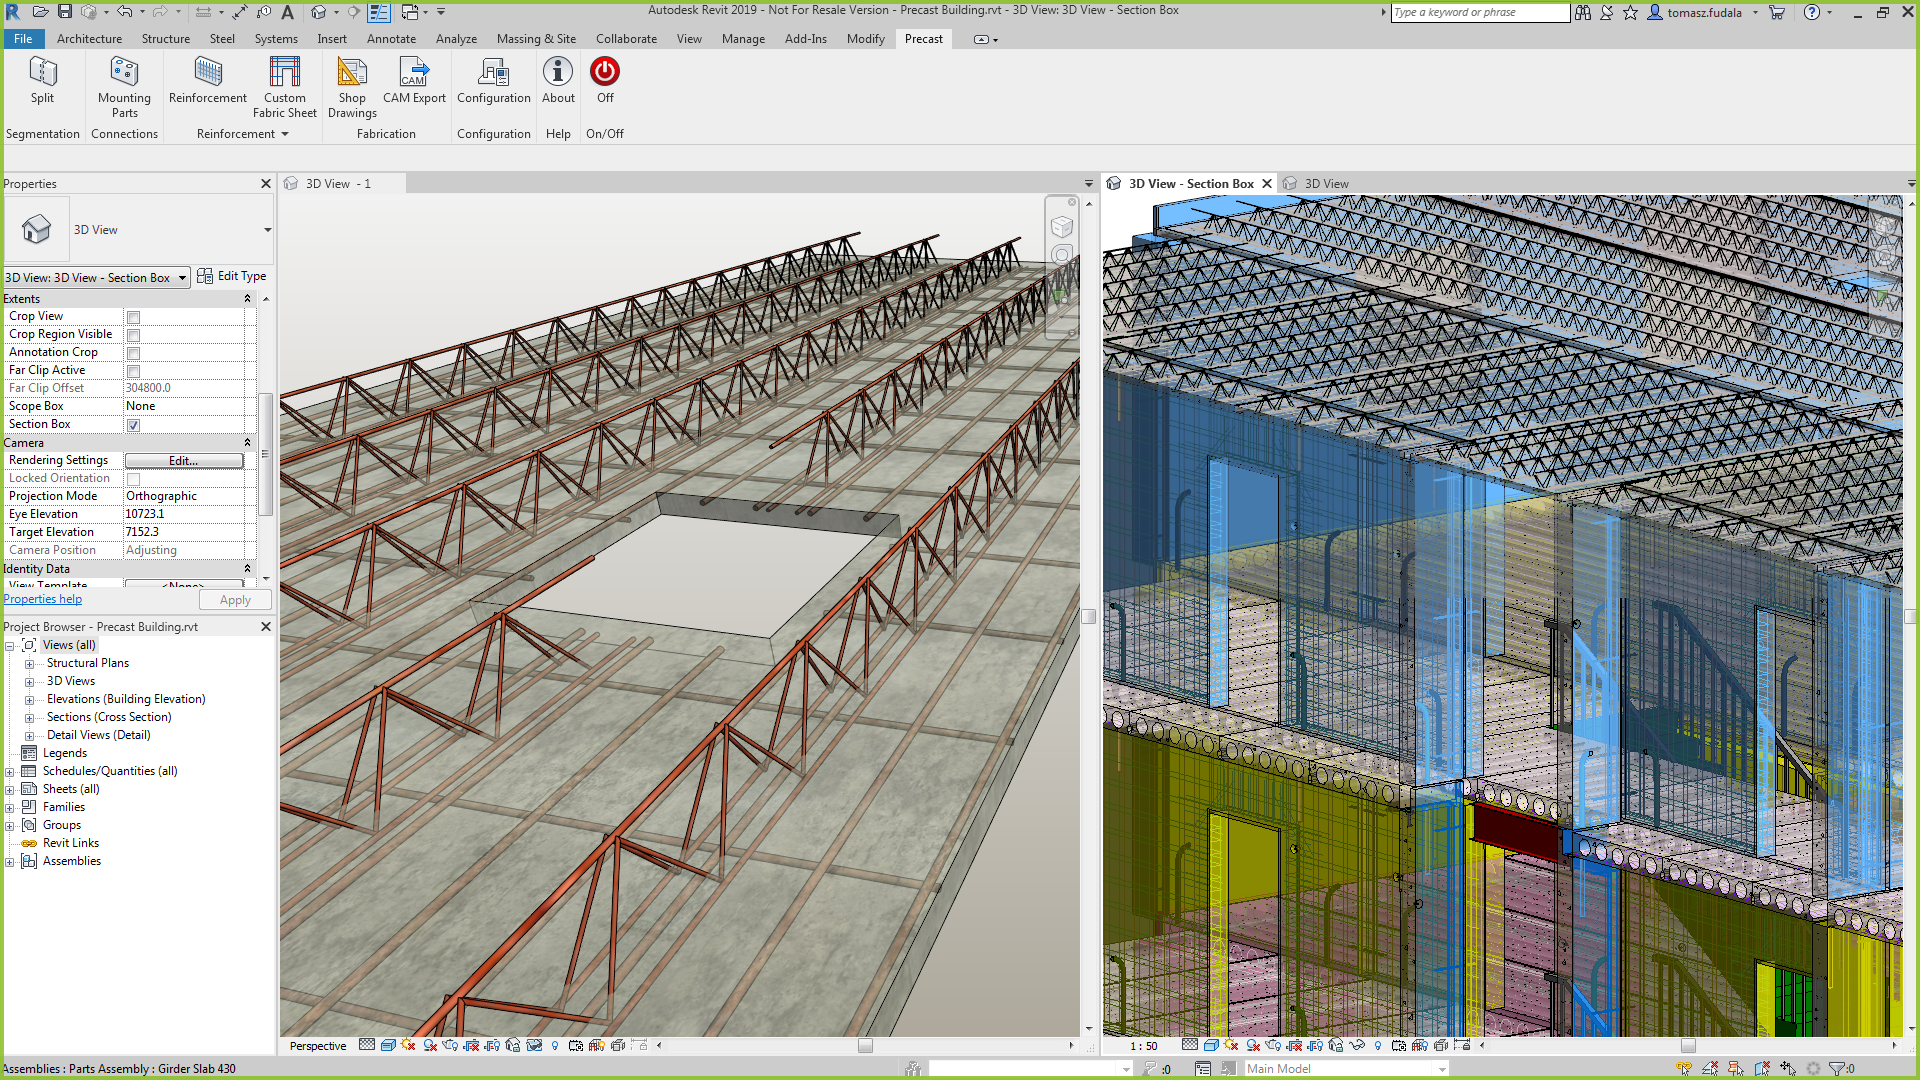 What's new in Autodesk's Revit 2019